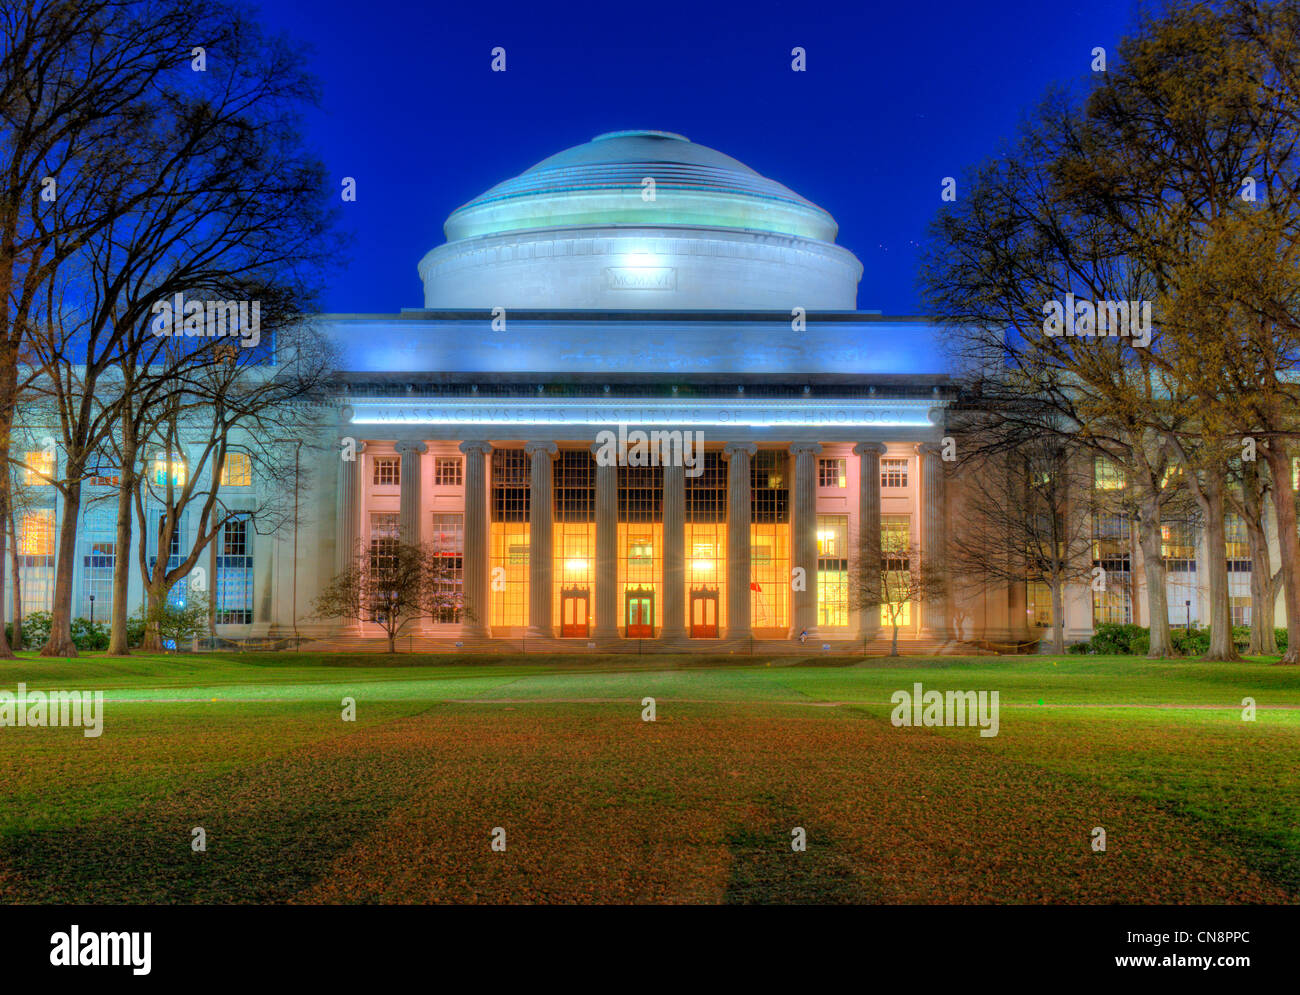 Great Dome of the Massachusetts Institute of Technology housing the Barker Engineering Library in Cambridge, MA. - Stock Image